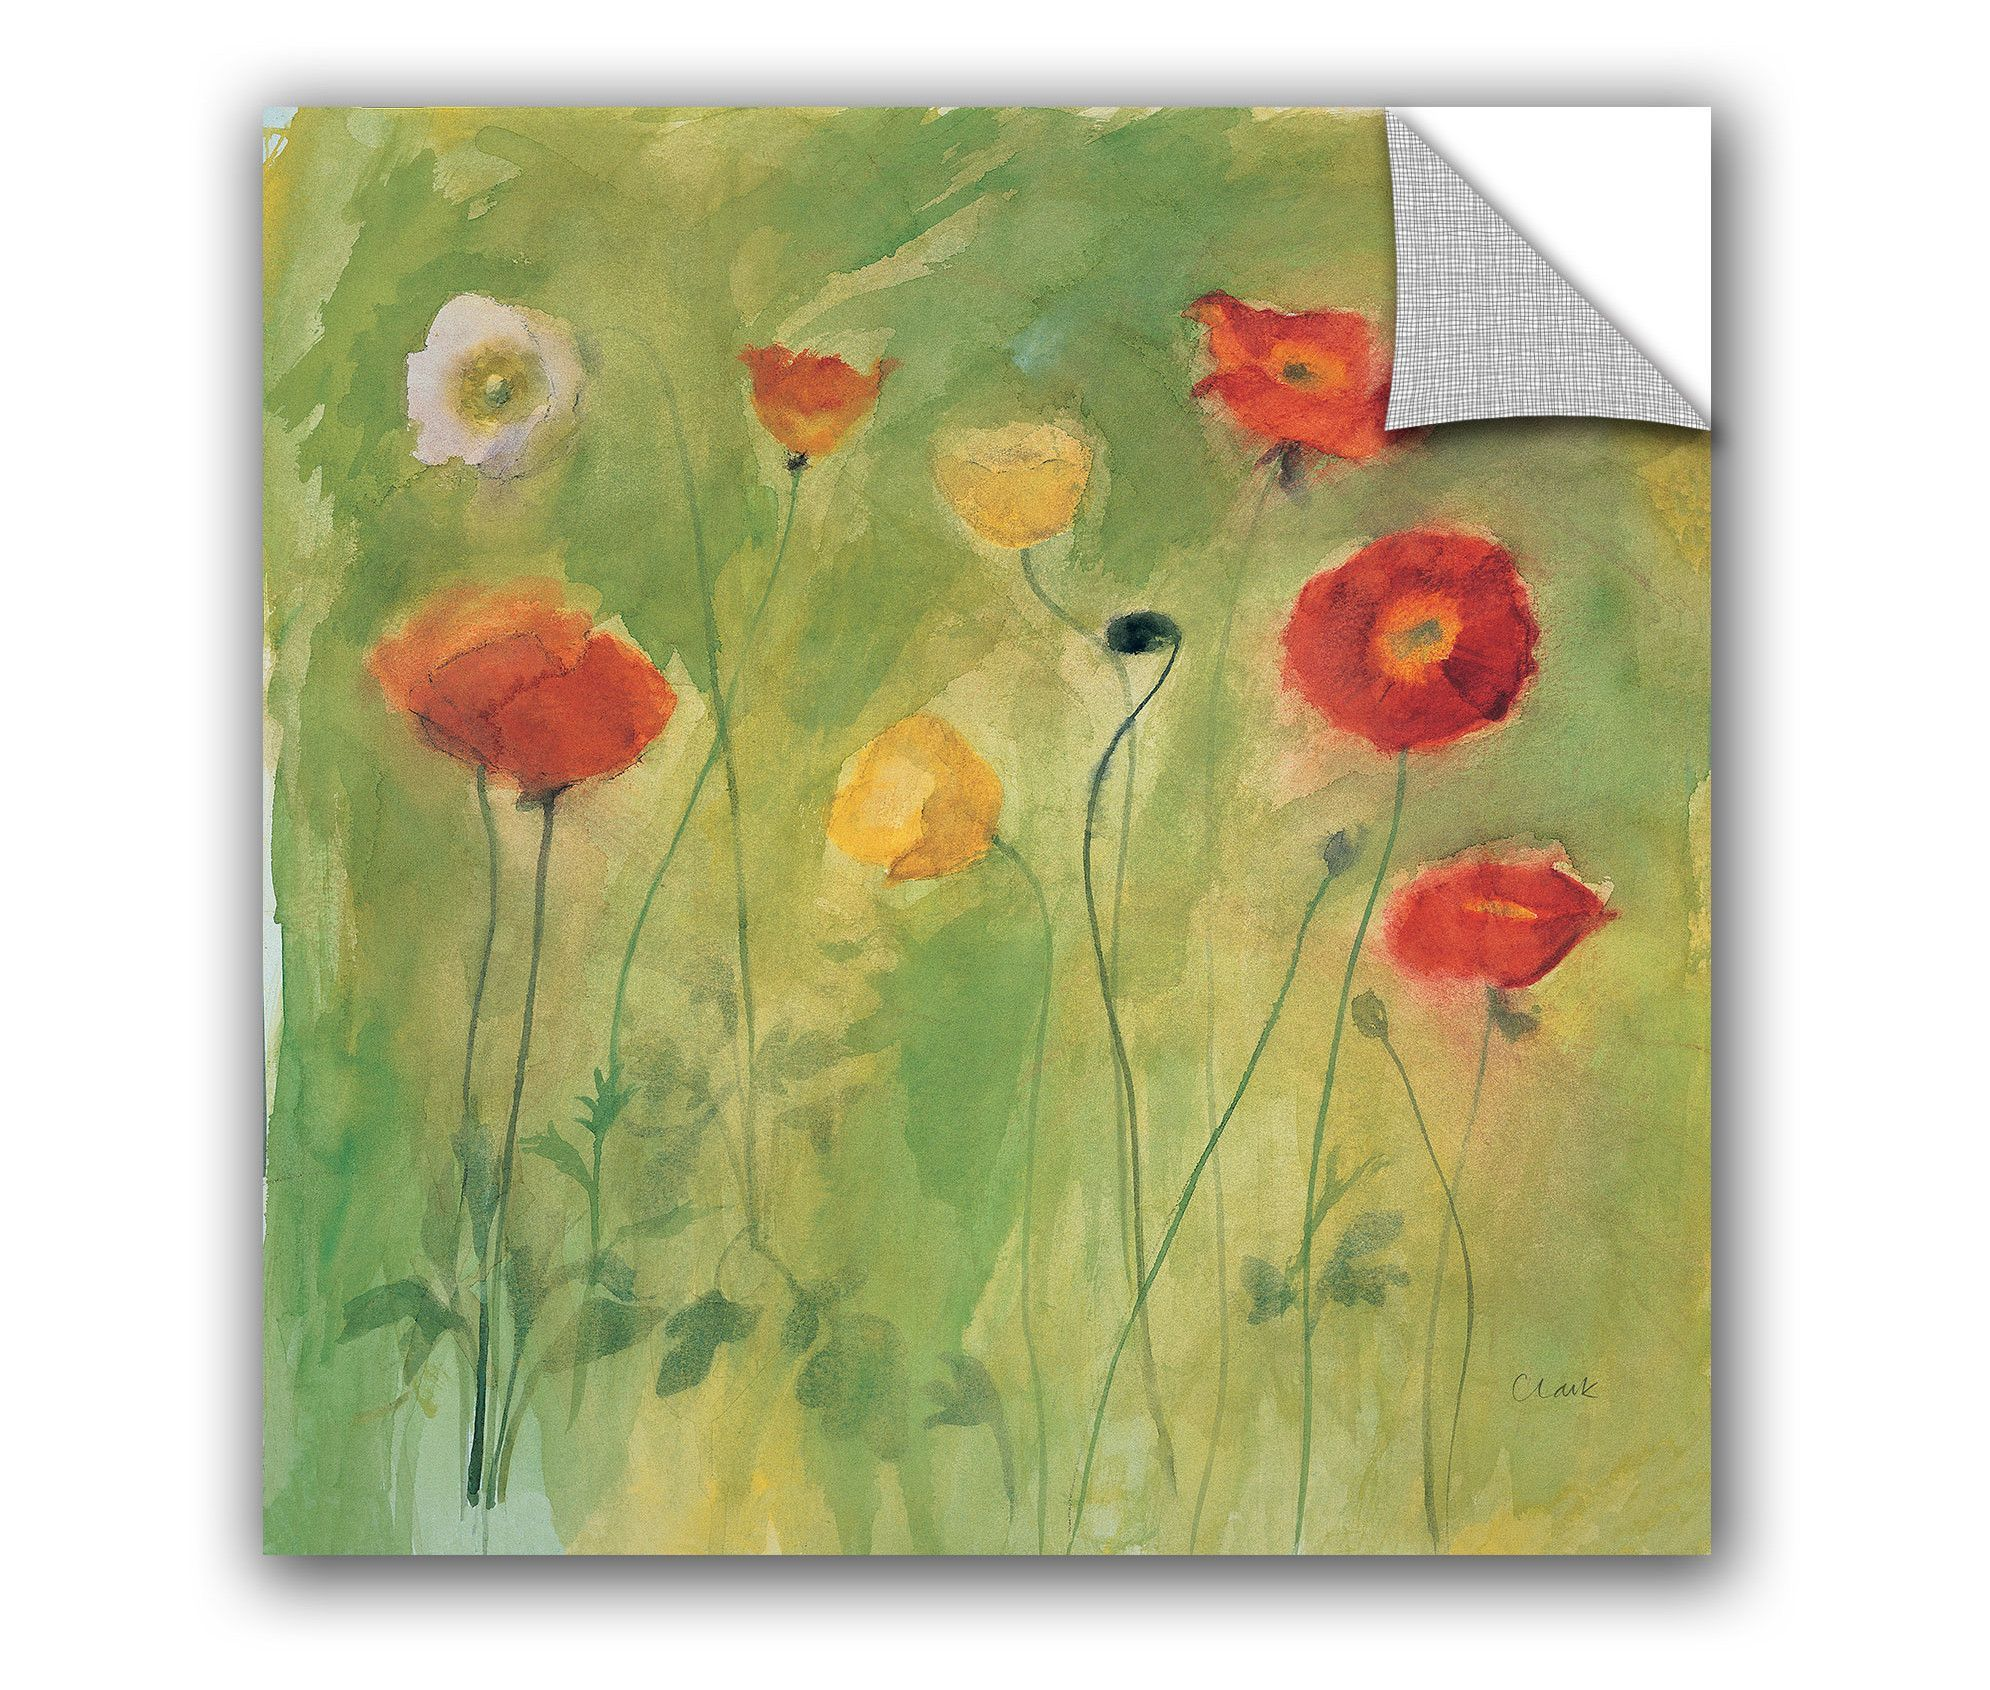 Michael Clark Poppies in Breeze Wall Mural | Wall murals, Breeze and ...